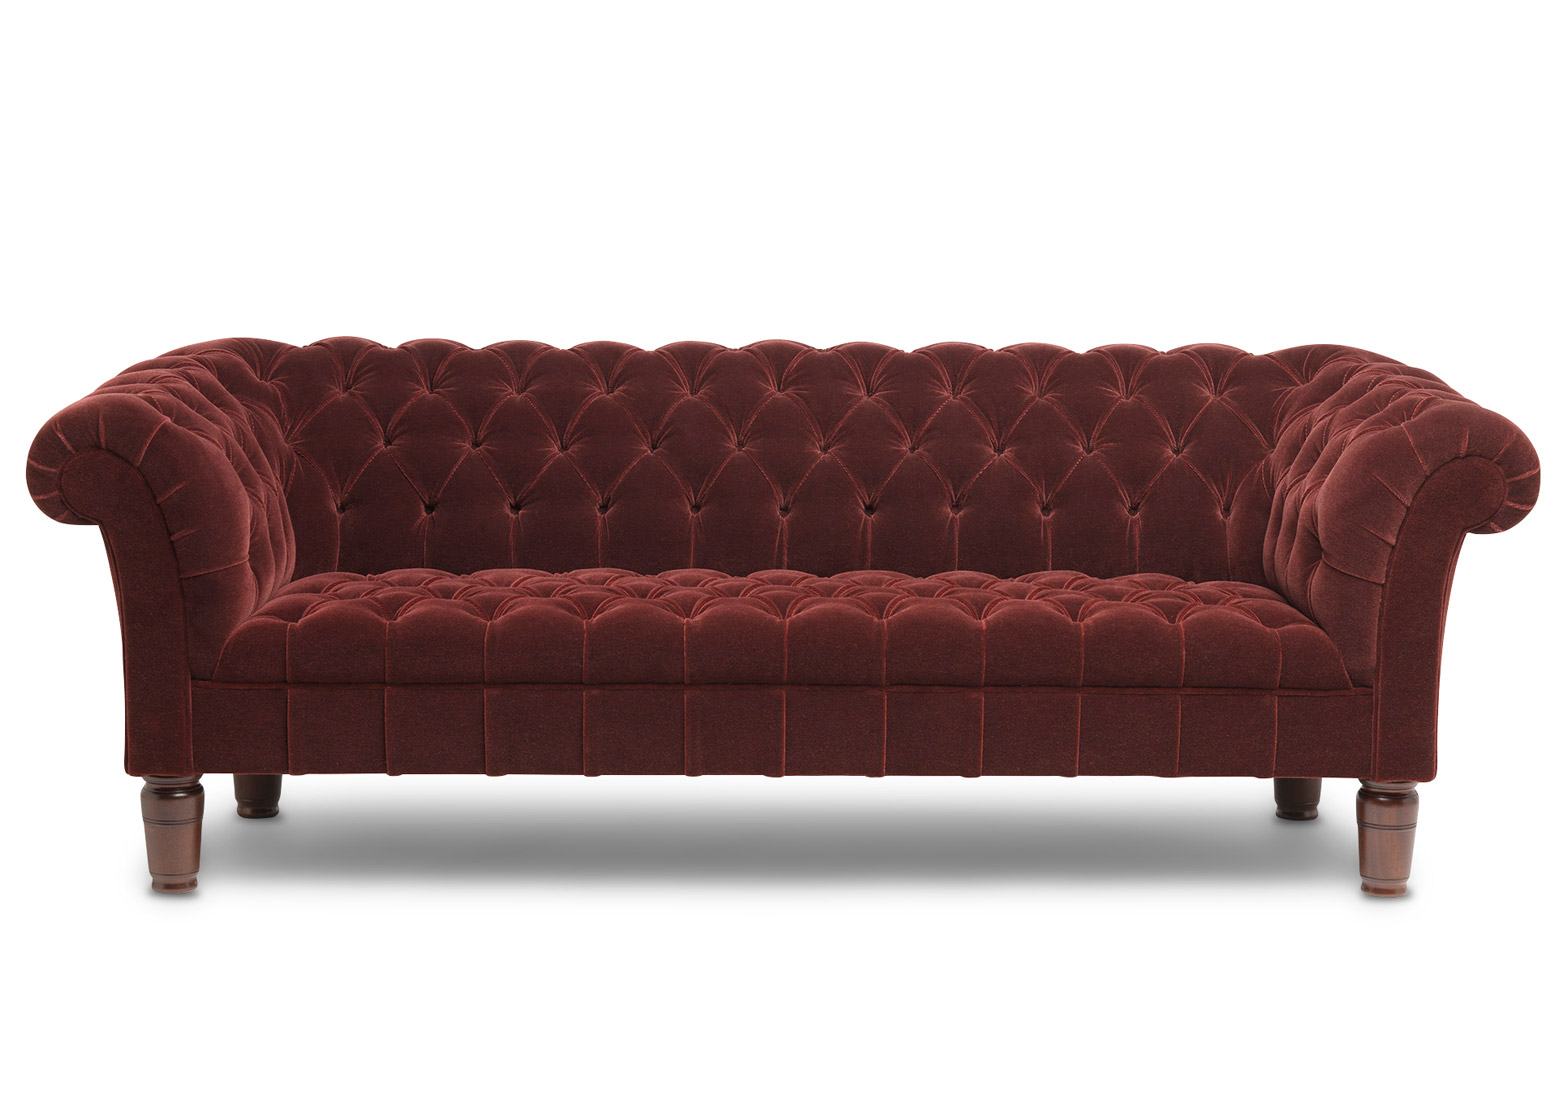 The Red Chesterfield Sofa from the Soho Home collection